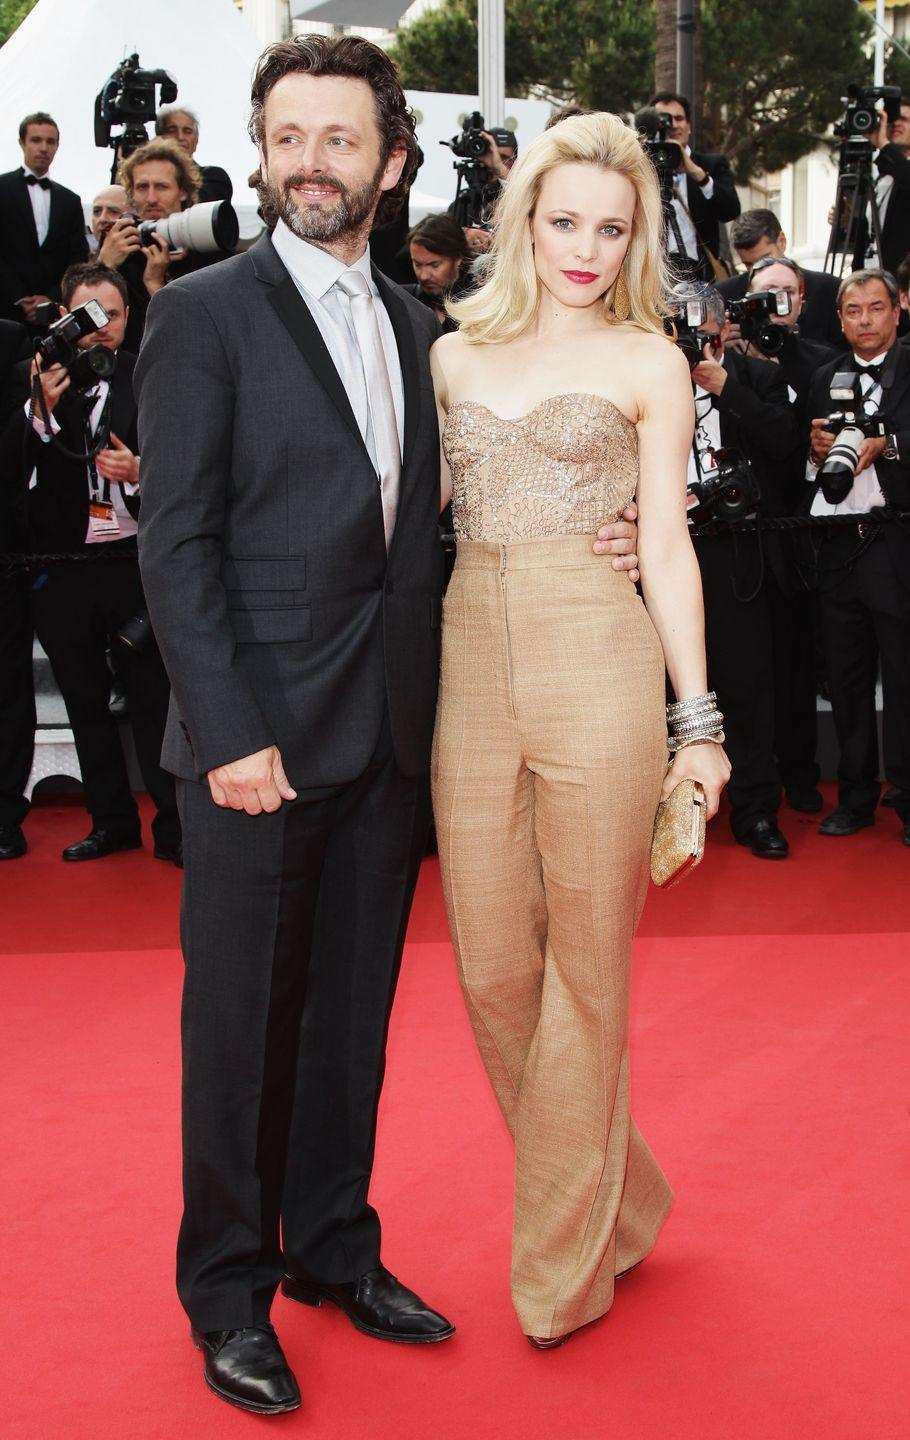 """<p>Oh, on-set romances. These two met while filming Woody Allen's <em>Midnight in Paris</em> and confirmed it on the red carpet at the 2011 Cannes Film Festival. Before breaking up in 2013, the couple never went too long without seeing each other.</p><p>""""Michael and I never spend more than three weeks apart -- we rack up a lot of air miles -- but you have to be quite adaptable in this business whether you are in a relationship or not,"""" <em>The Notebook</em> star<a href=""""https://www.glamour.com/story/rachel-mcadams-and-michael-she"""" rel=""""nofollow noopener"""" target=""""_blank"""" data-ylk=""""slk:said."""" class=""""link rapid-noclick-resp""""> said.</a></p>"""